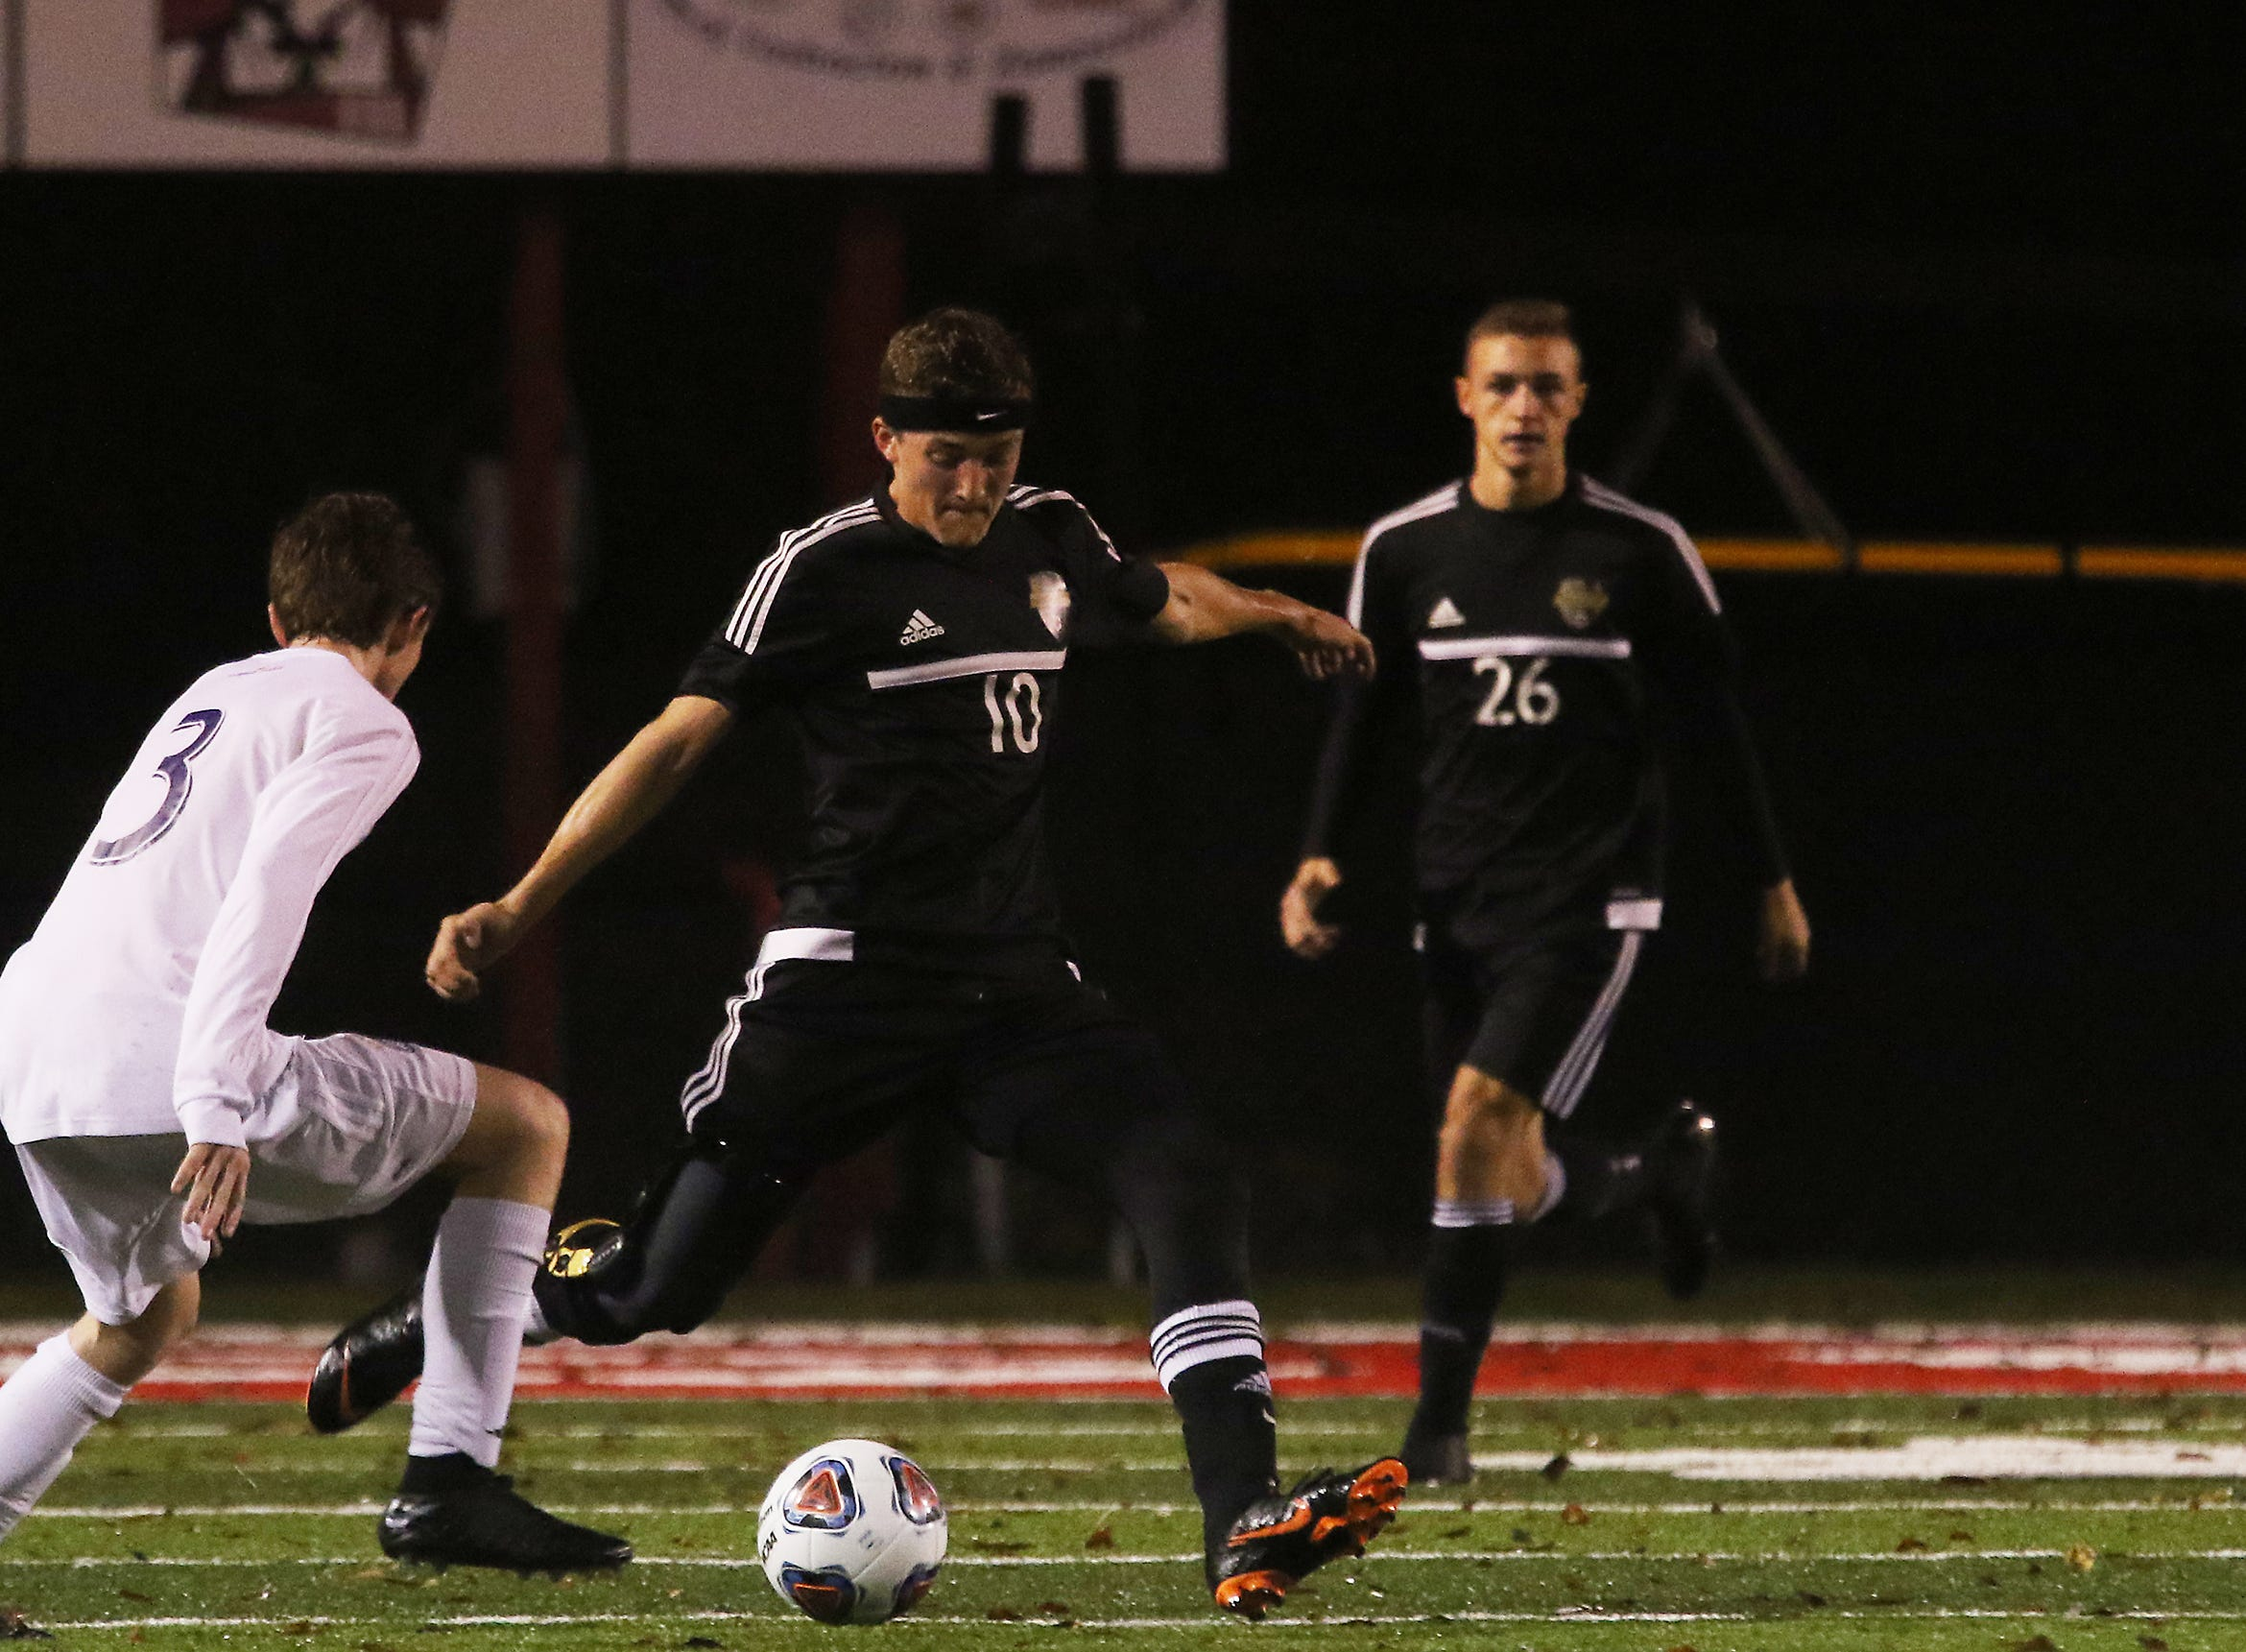 River View's Andrew Martin clears the ball against DeSales.